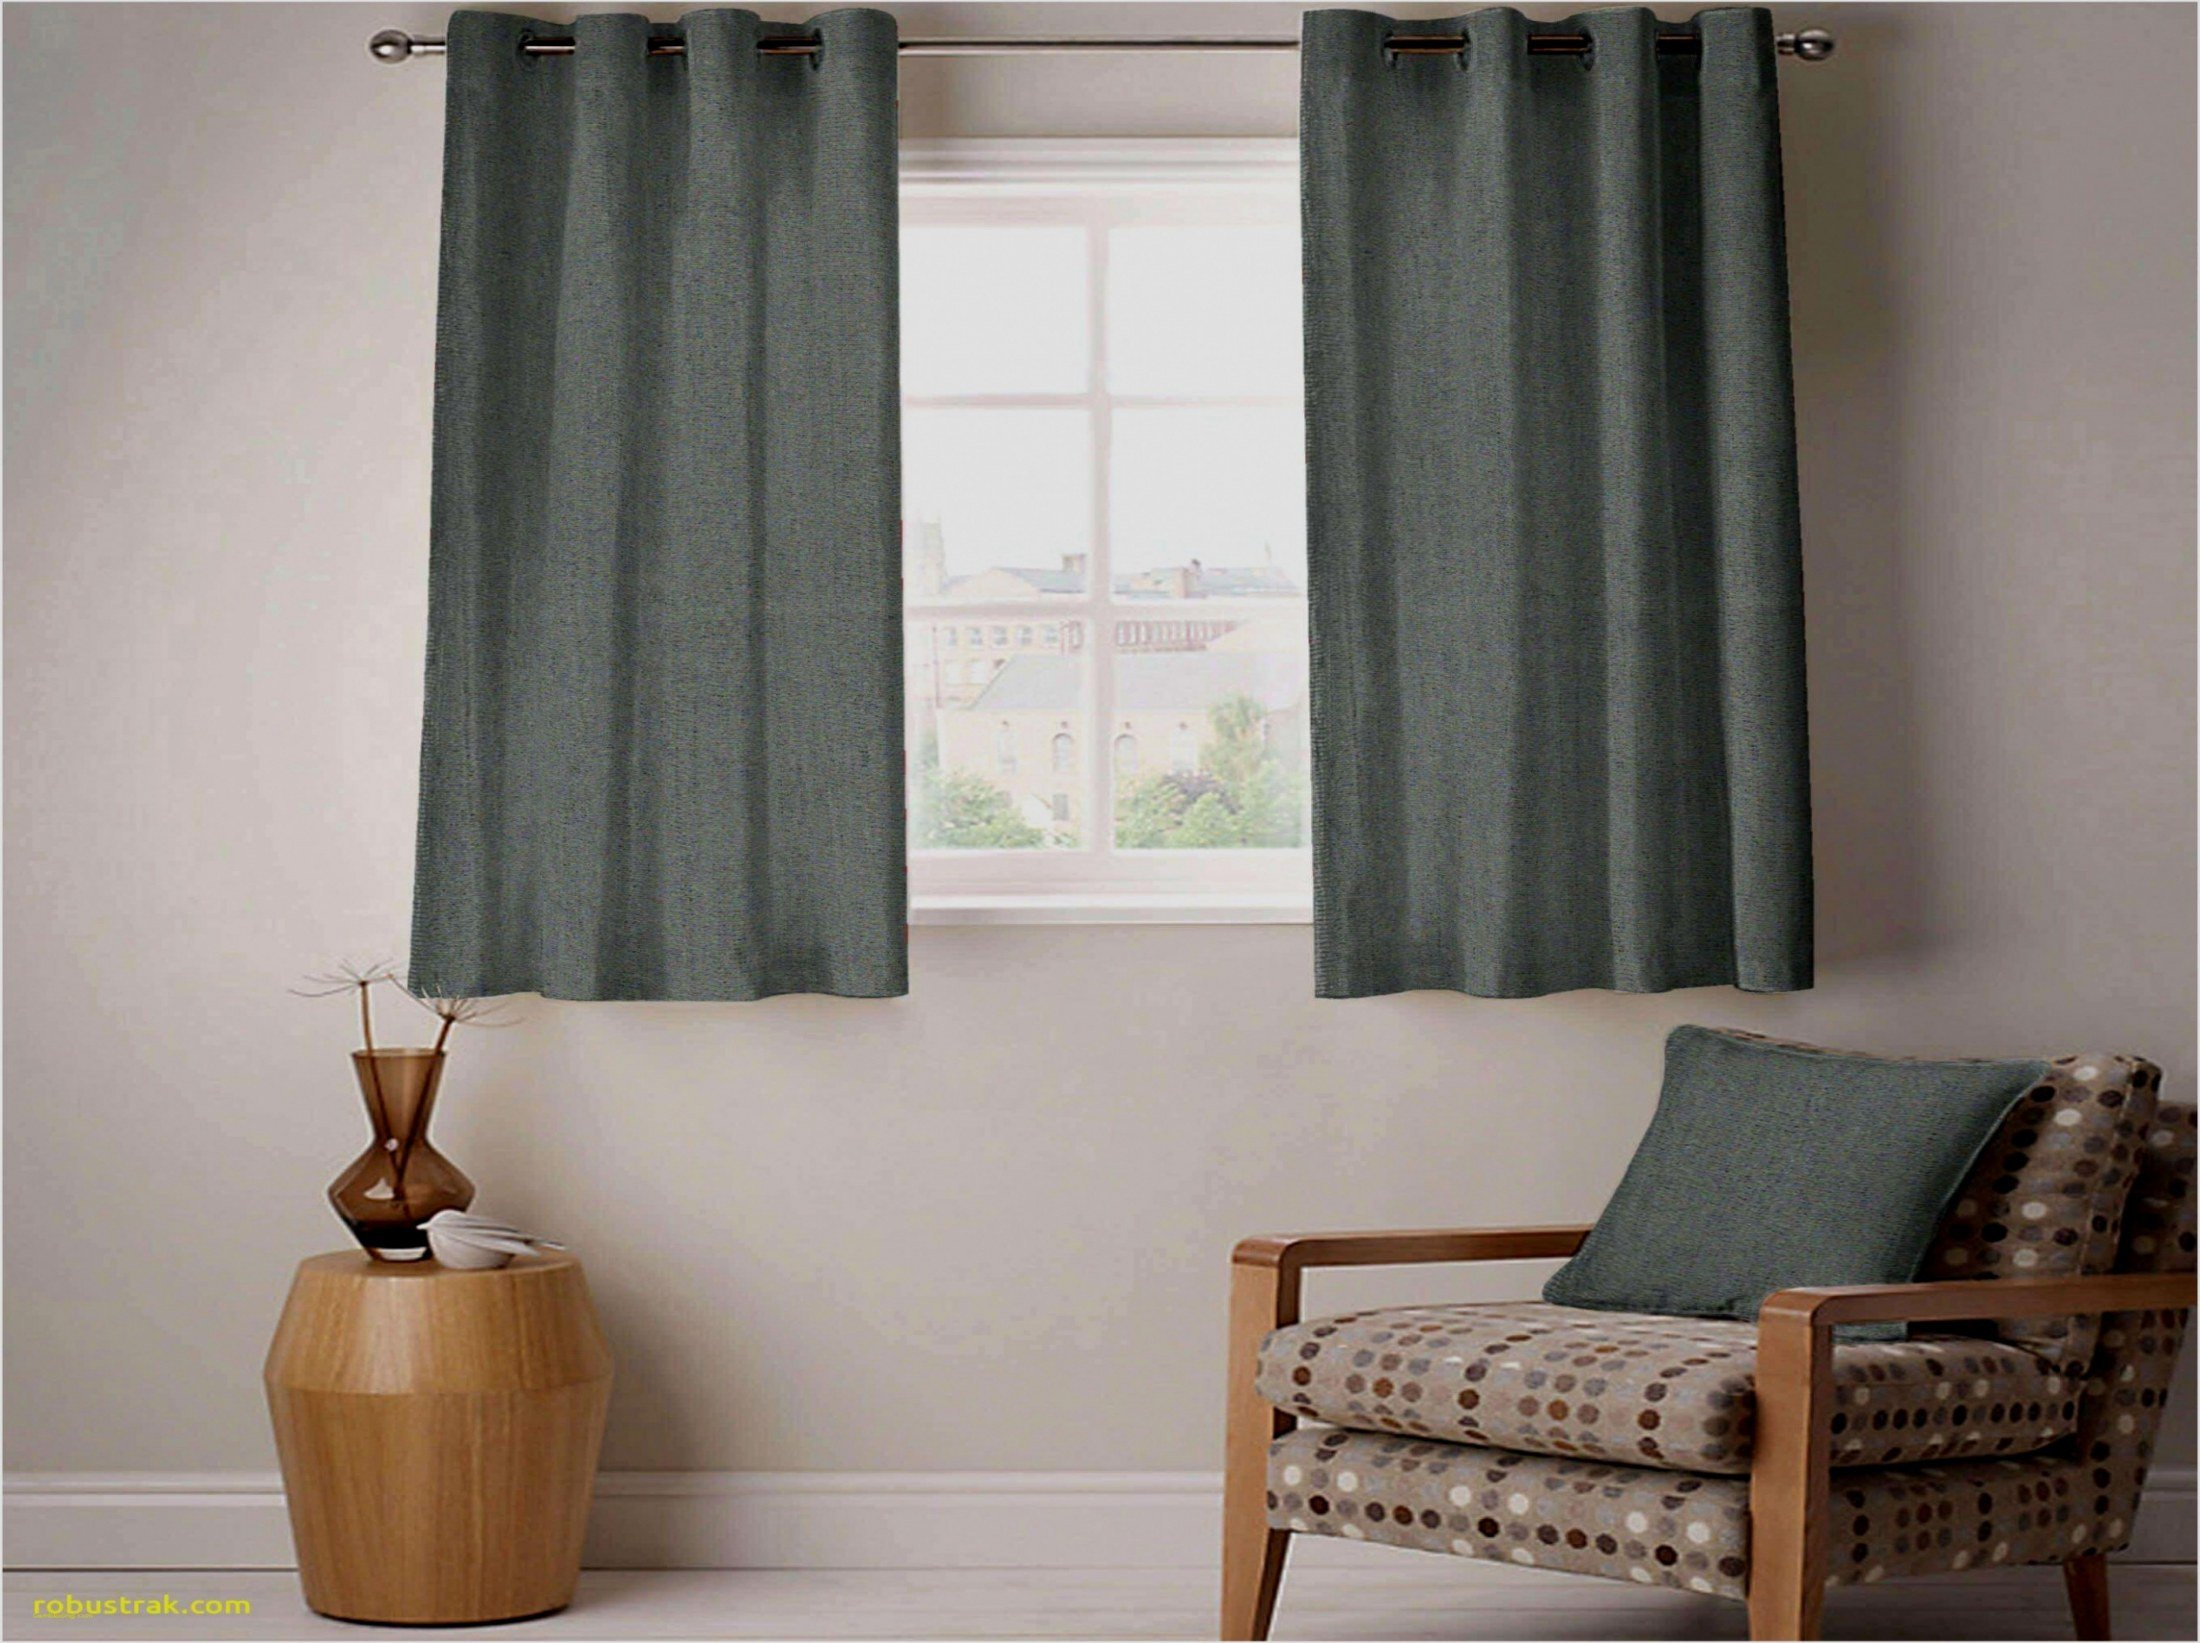 Peach Curtains for Bedroom Fresh Curtains for Grey Walls Living Room Unique Wall Curtains for